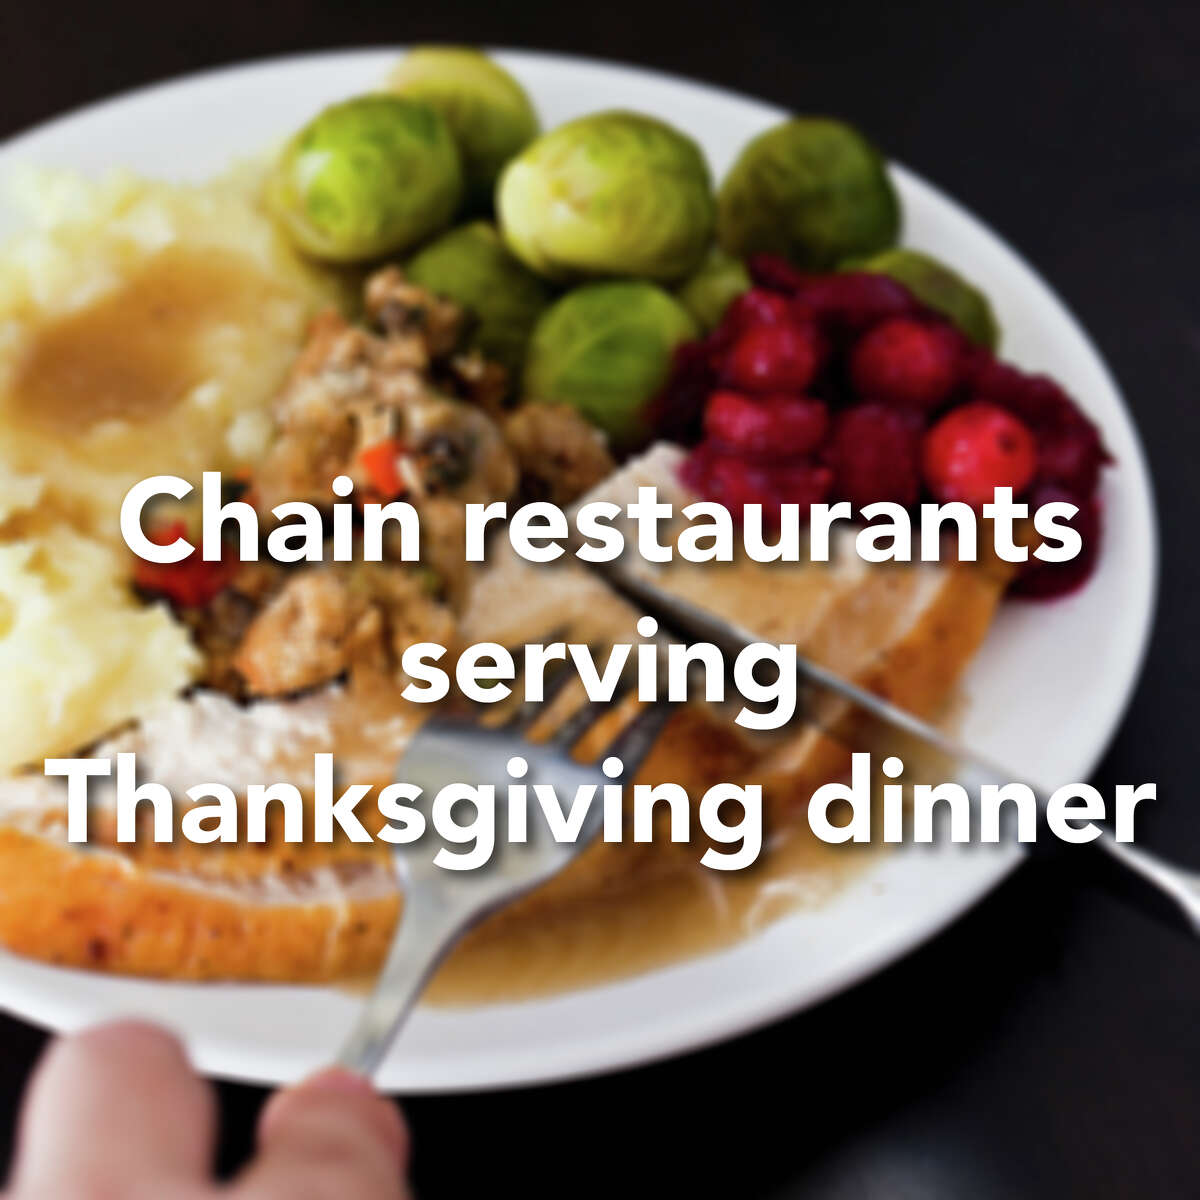 >> The following chain restaurants are open on Thanksgiving and some are offering special Turkey Day menus and specials.